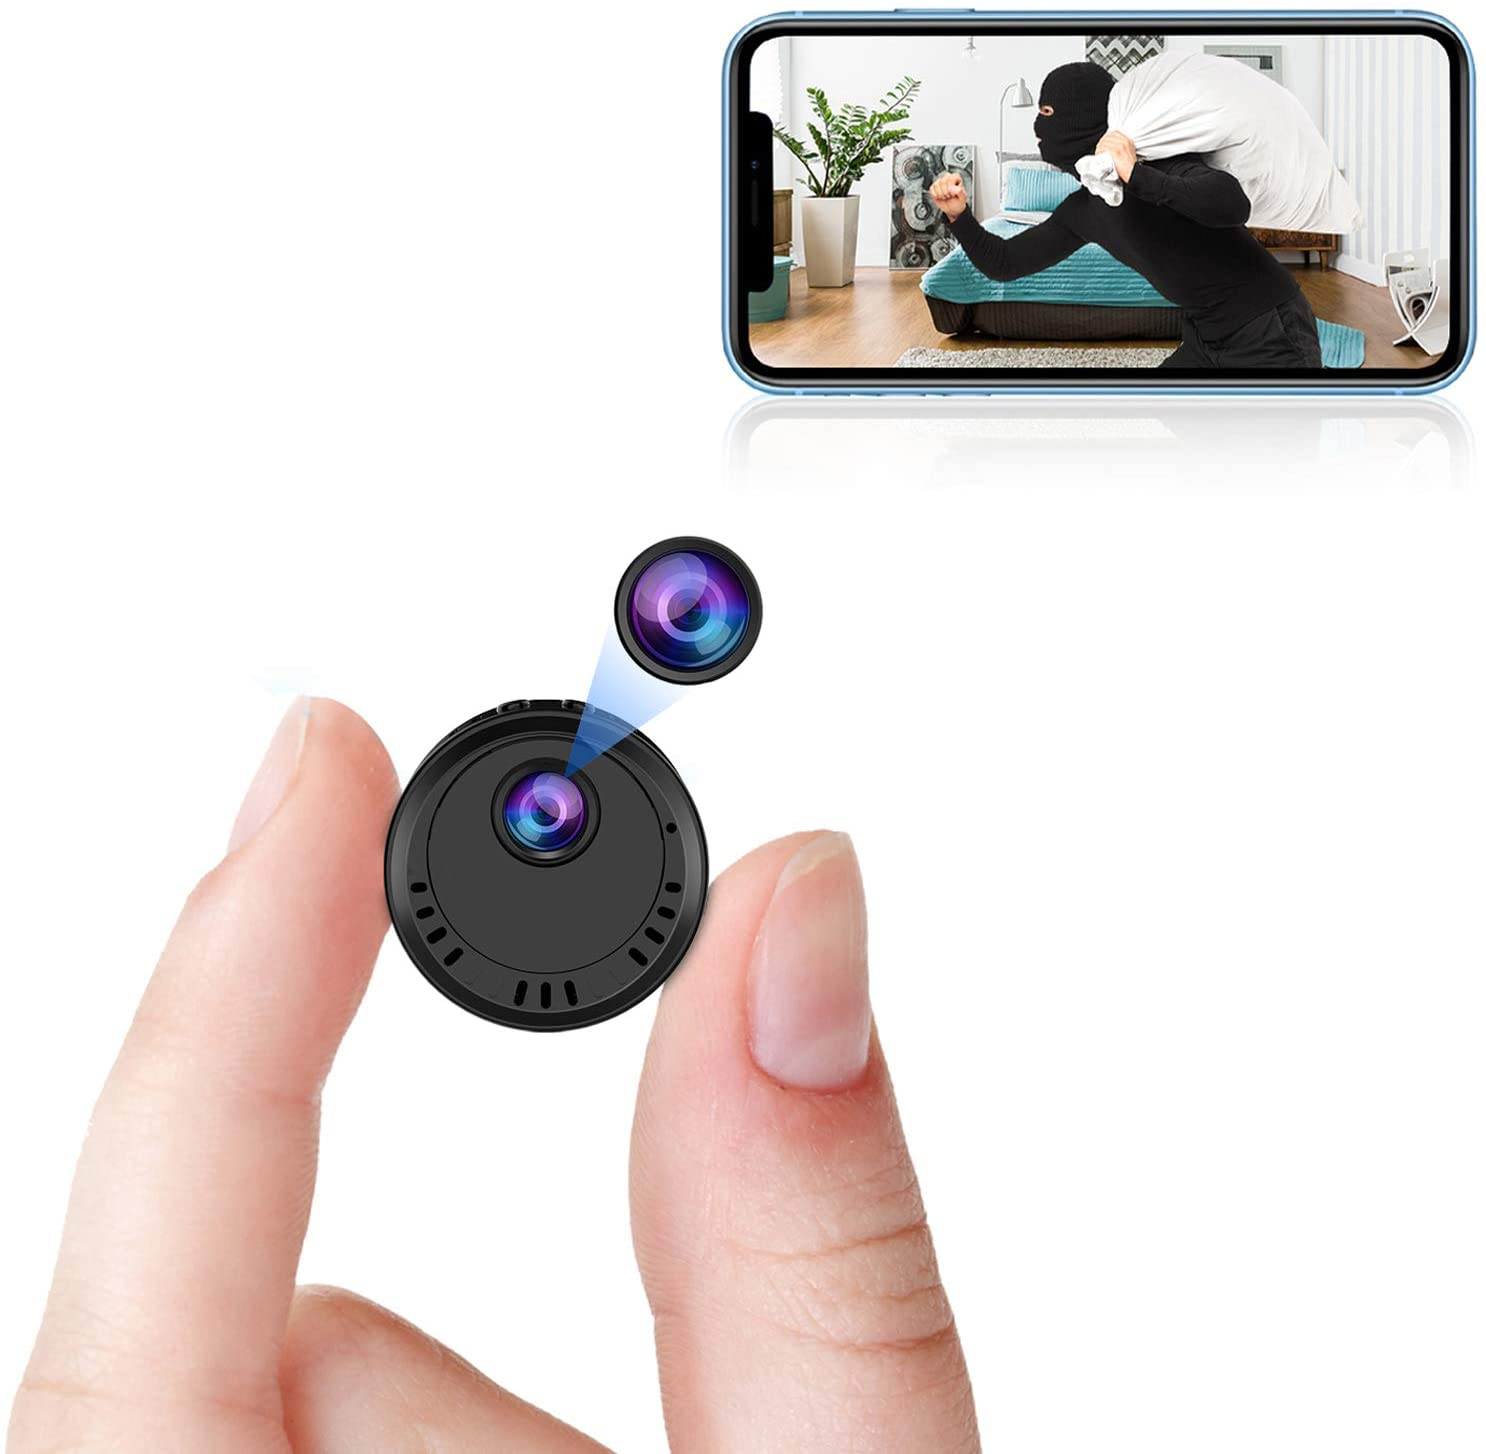 Best Private Spy Camera Buyers Guide and Review (2021)